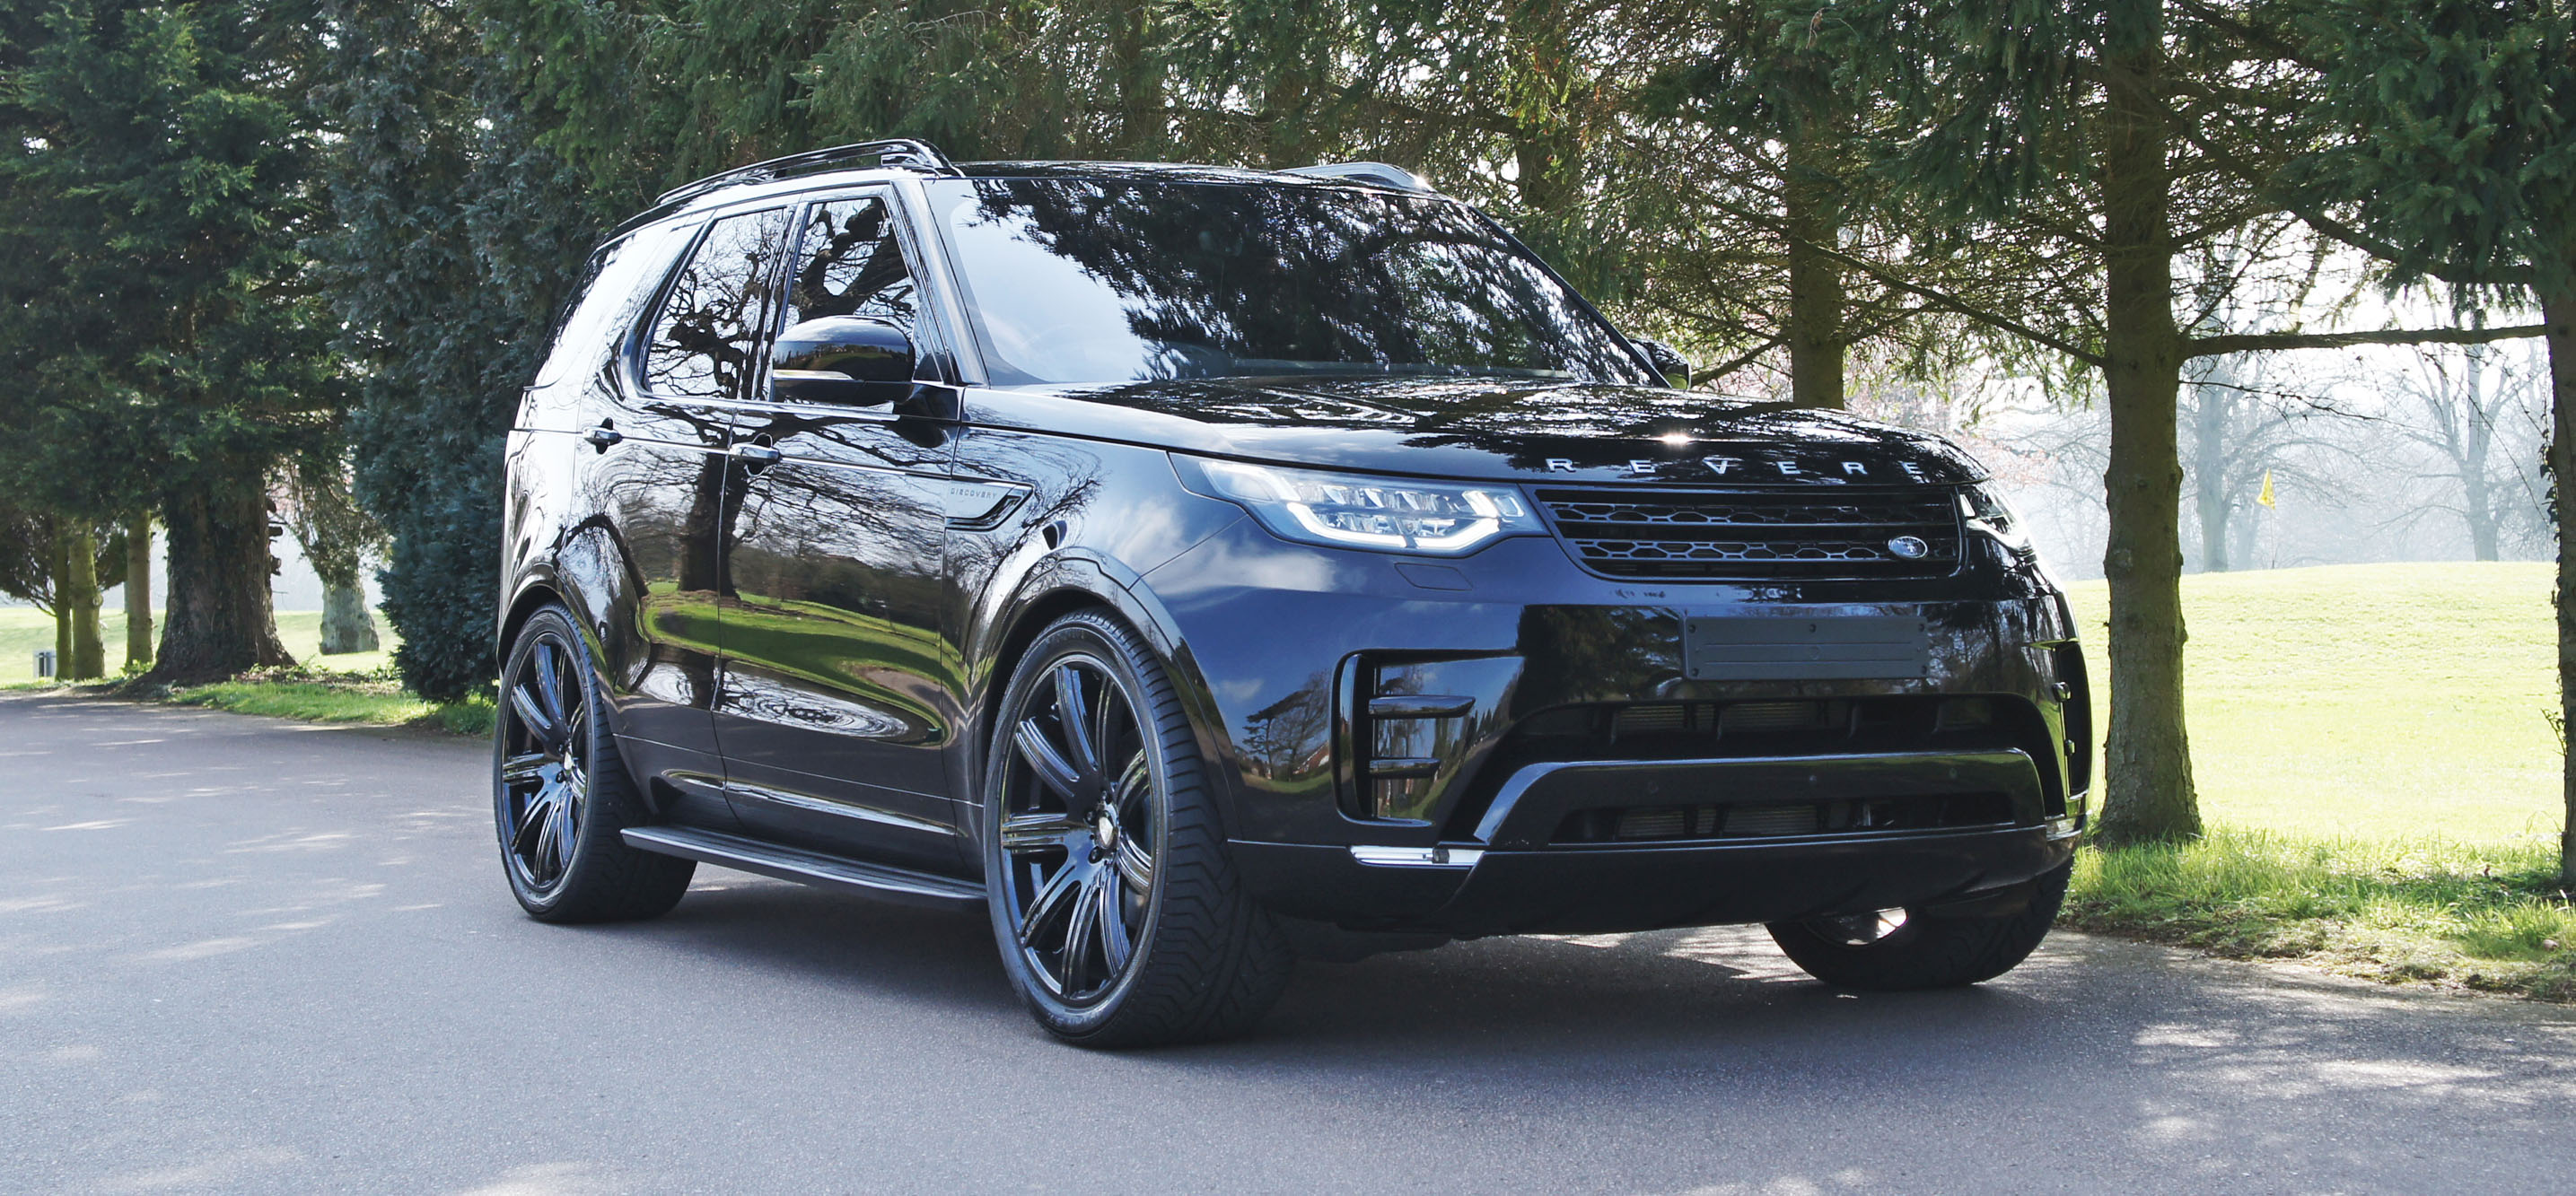 land rover discovery 5 exterior revere london. Black Bedroom Furniture Sets. Home Design Ideas